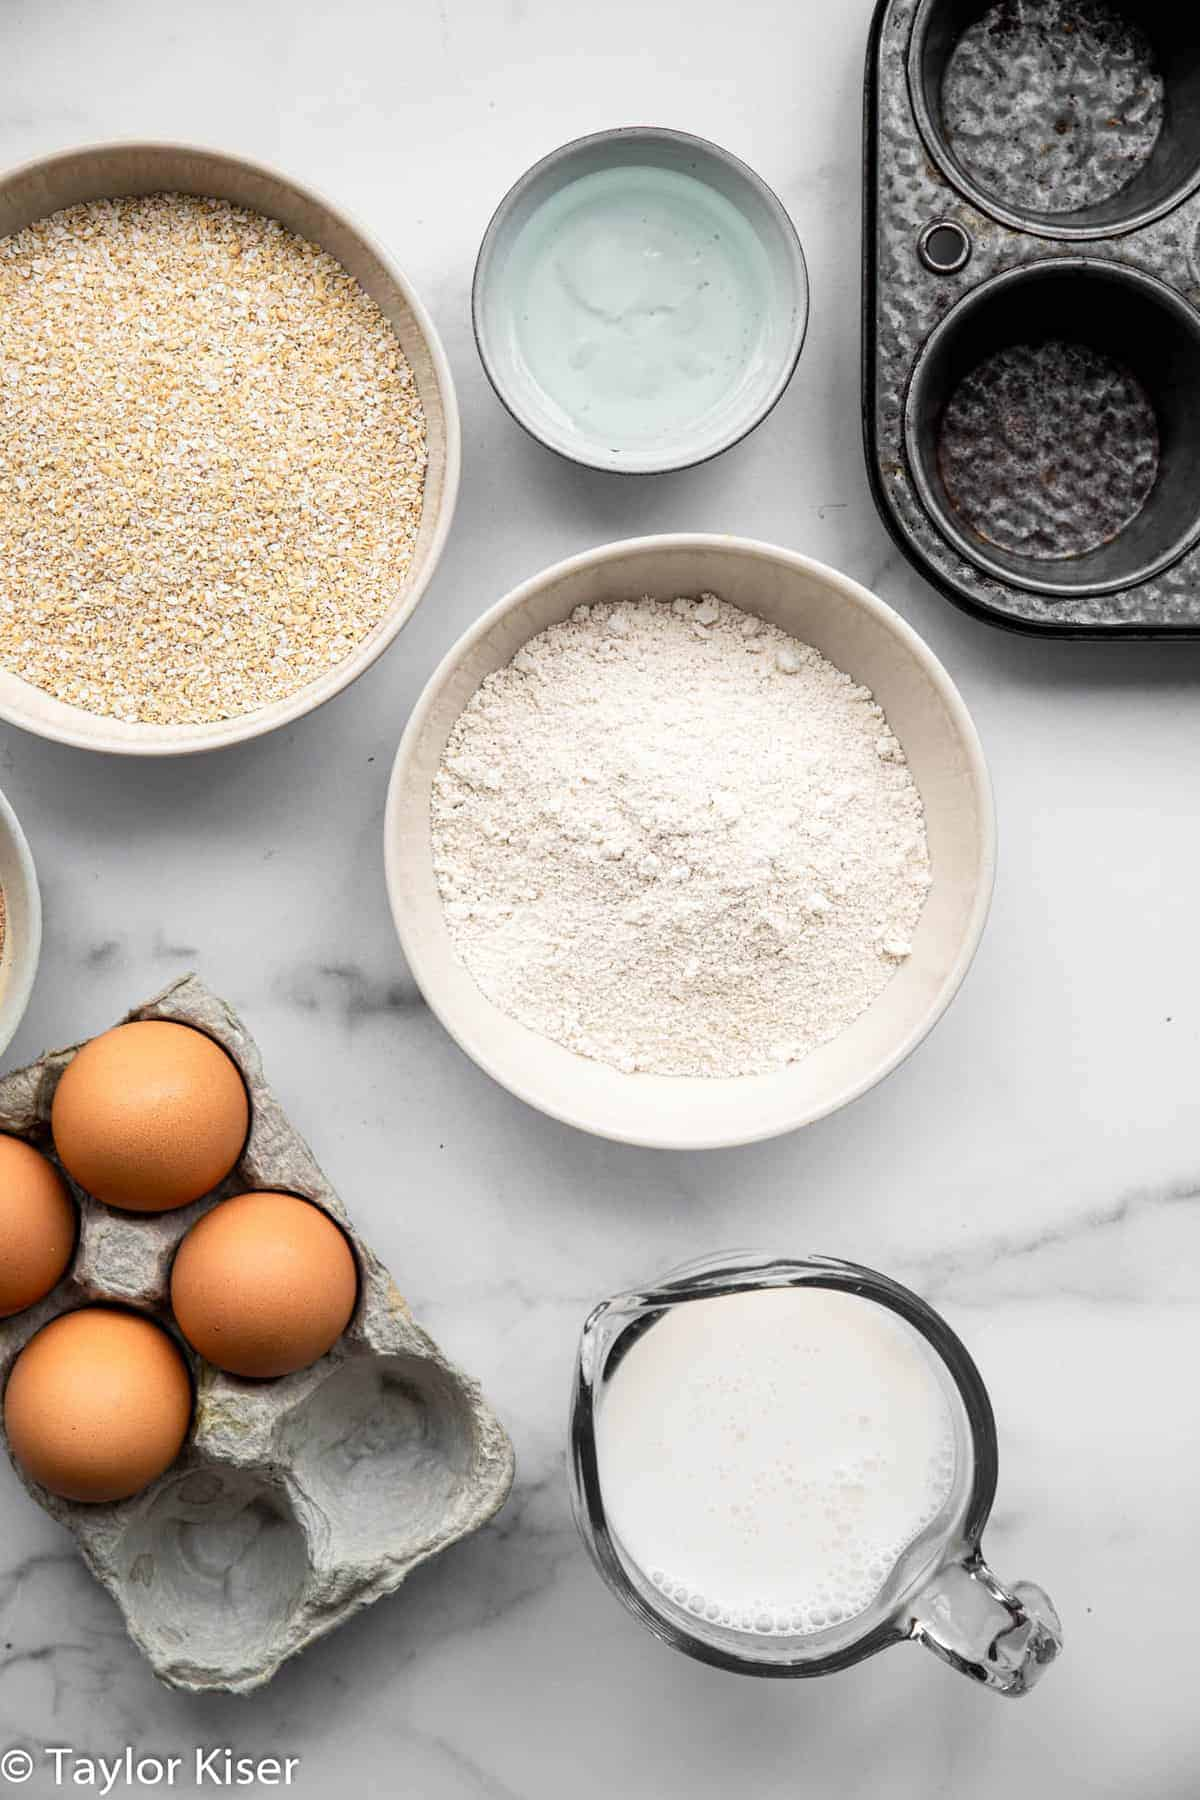 ingredients for an oat bran muffin recipe in bowls